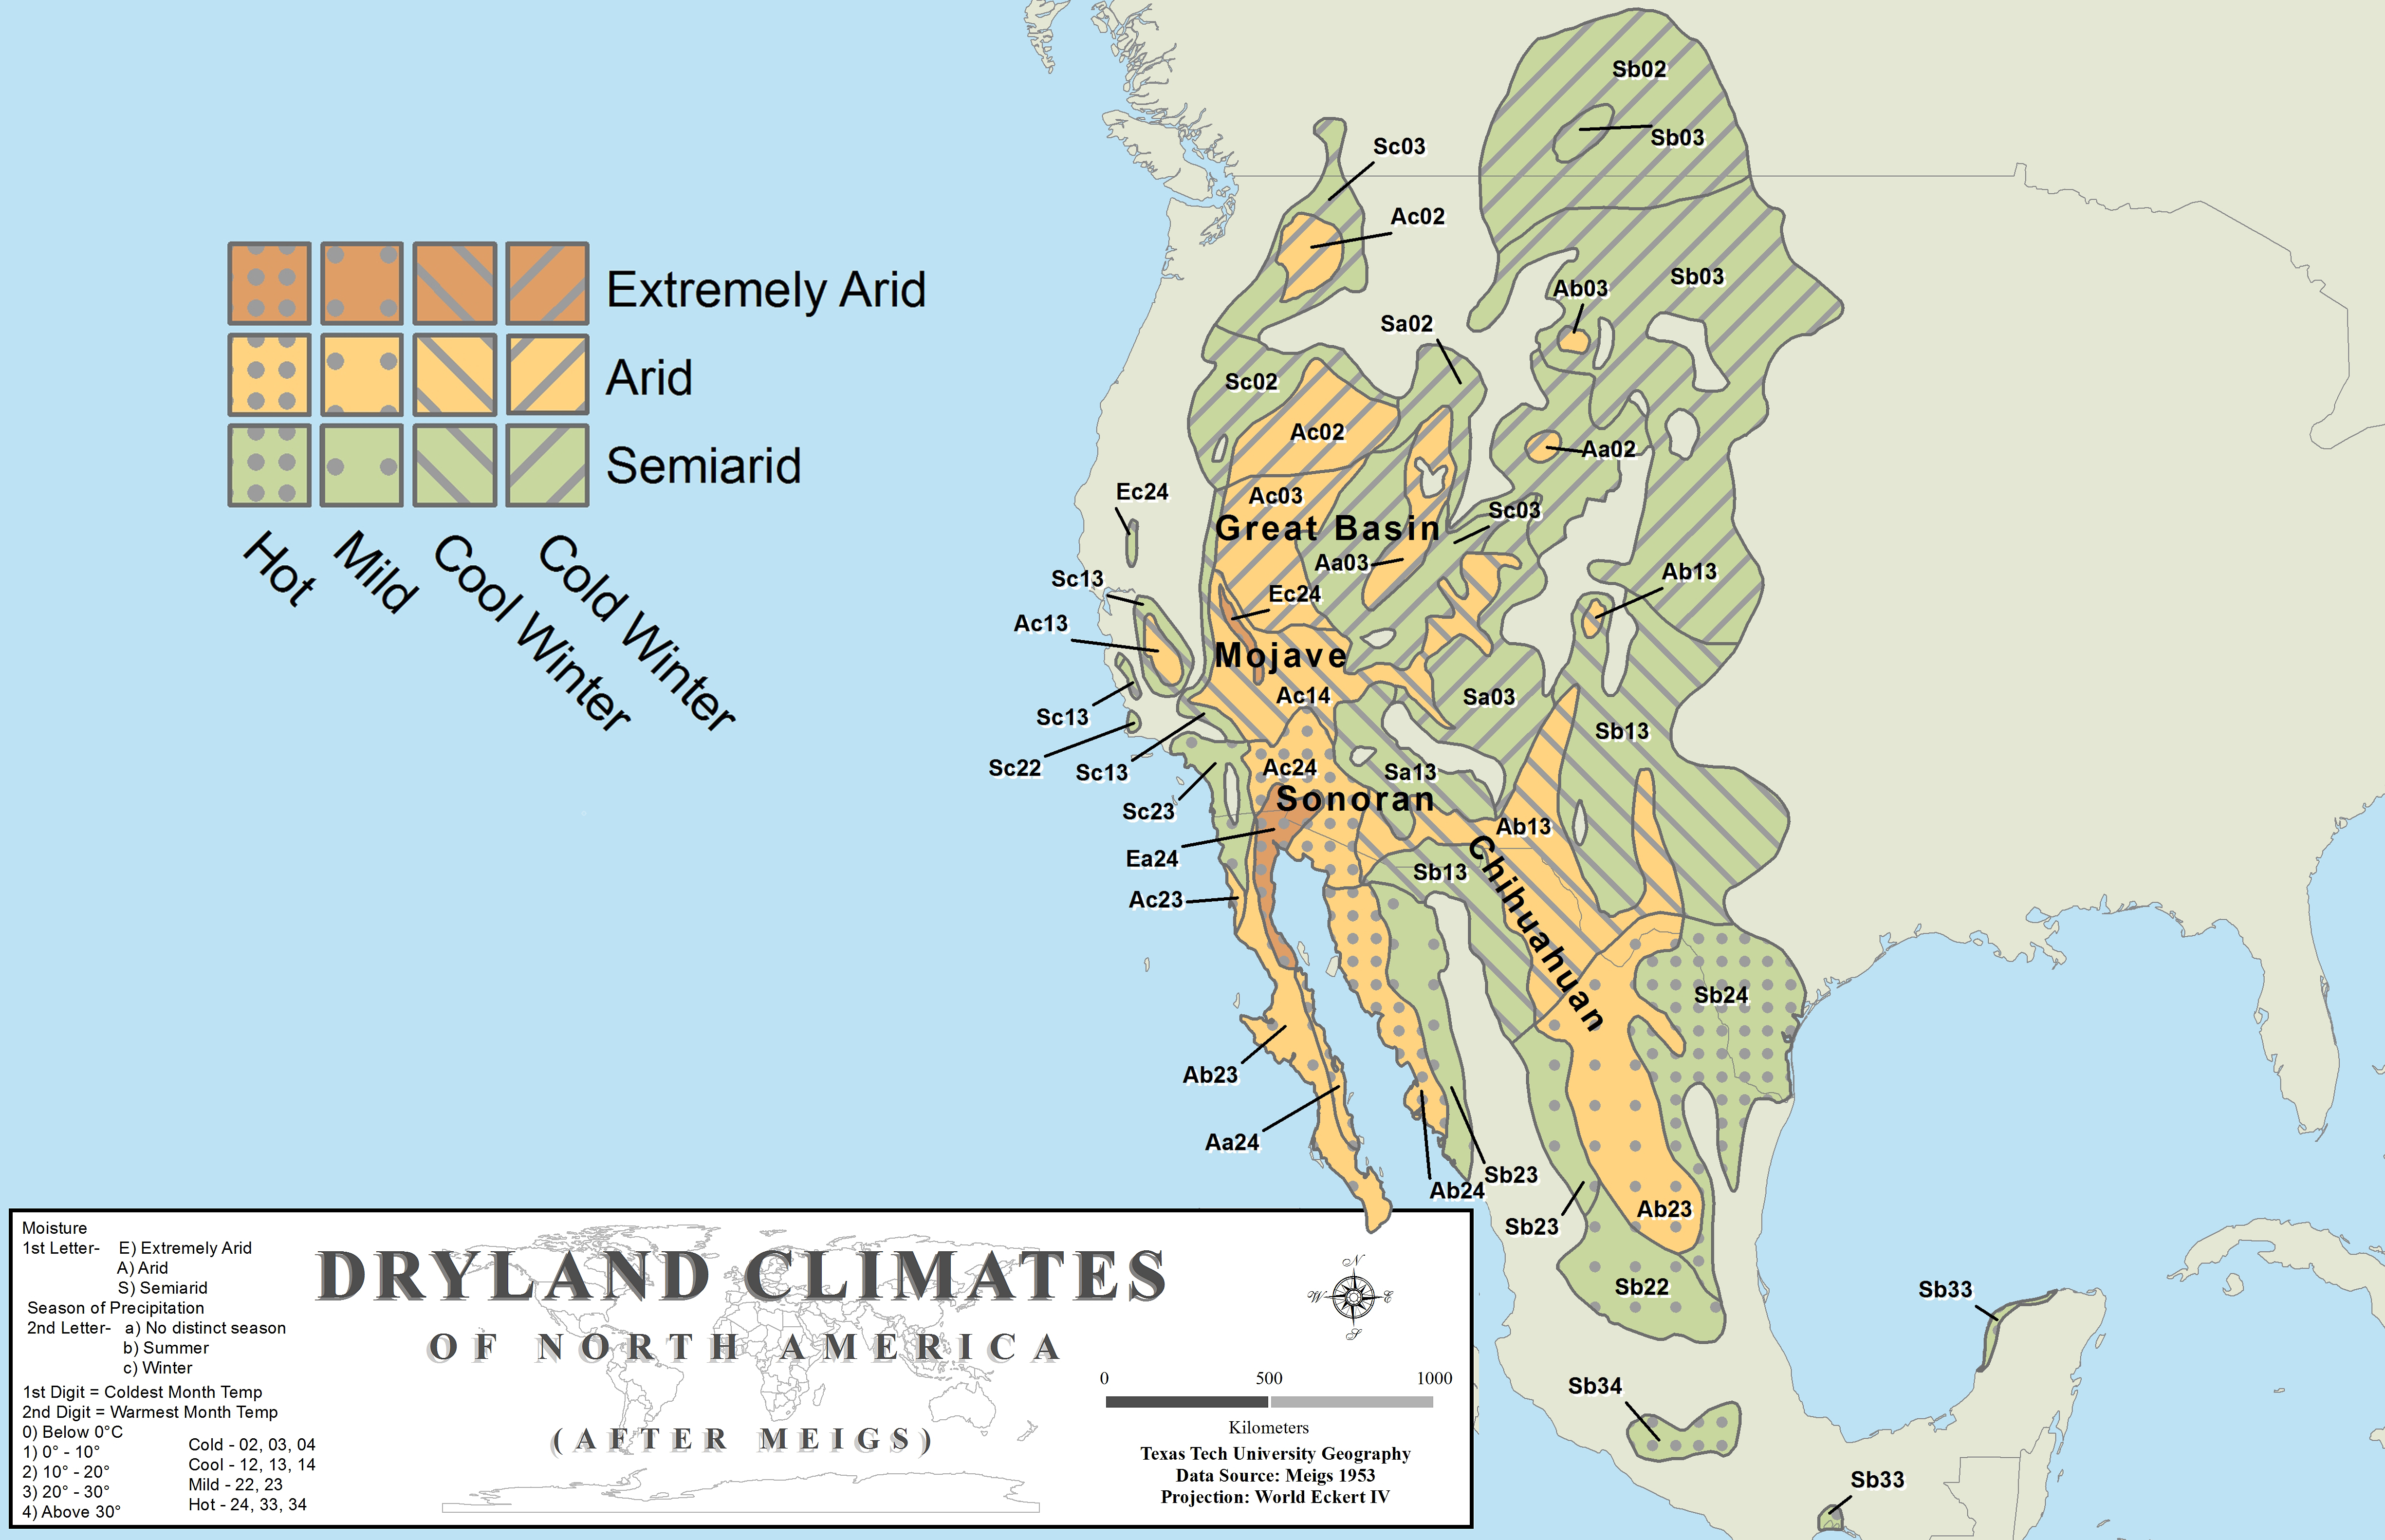 North America Dryland Climates after meigs